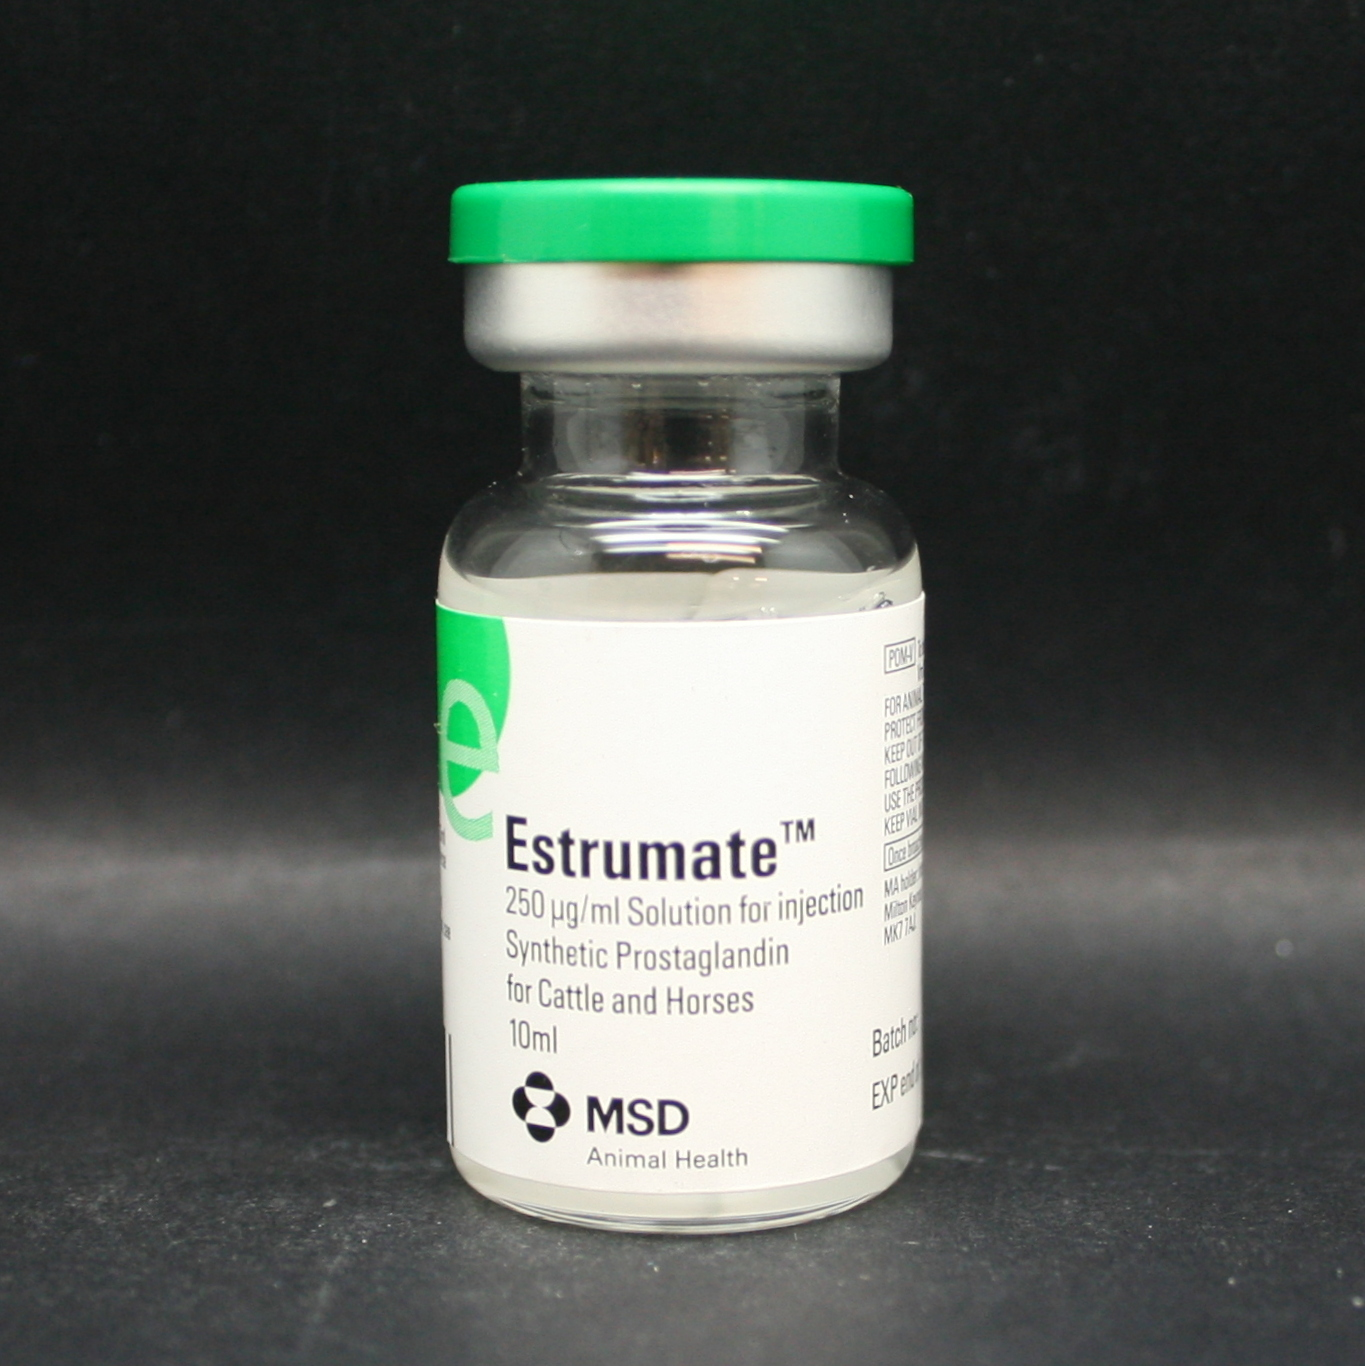 Estrumate 250 �g/ml solution for injection